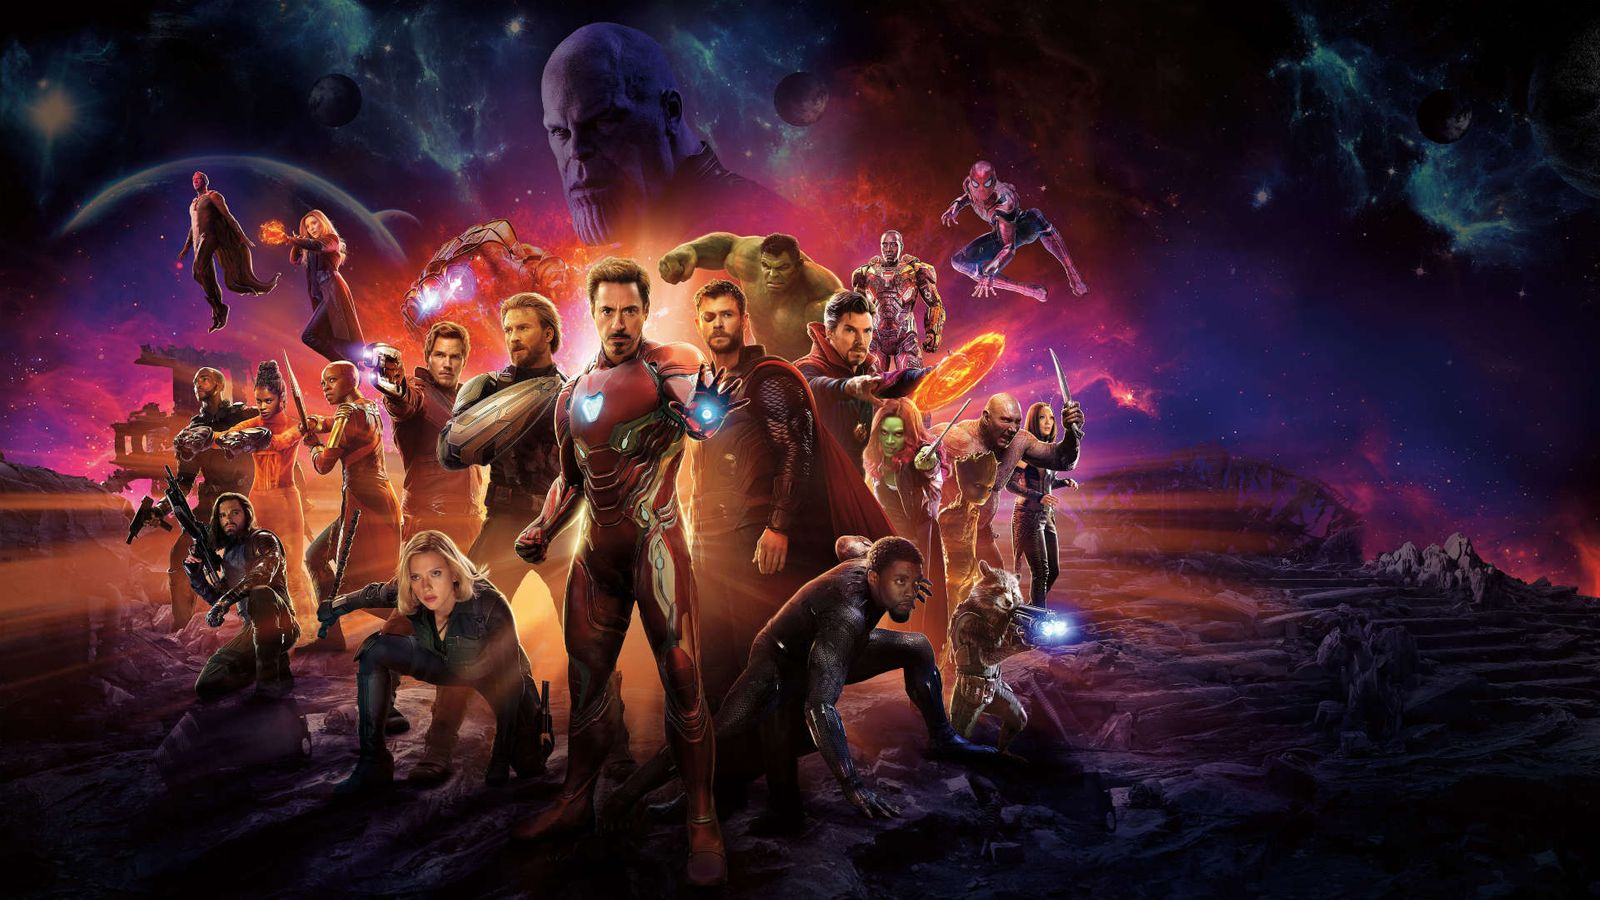 Avengers Infinity War Wallpapers 33 images   Wallpaper Stream 1600x900